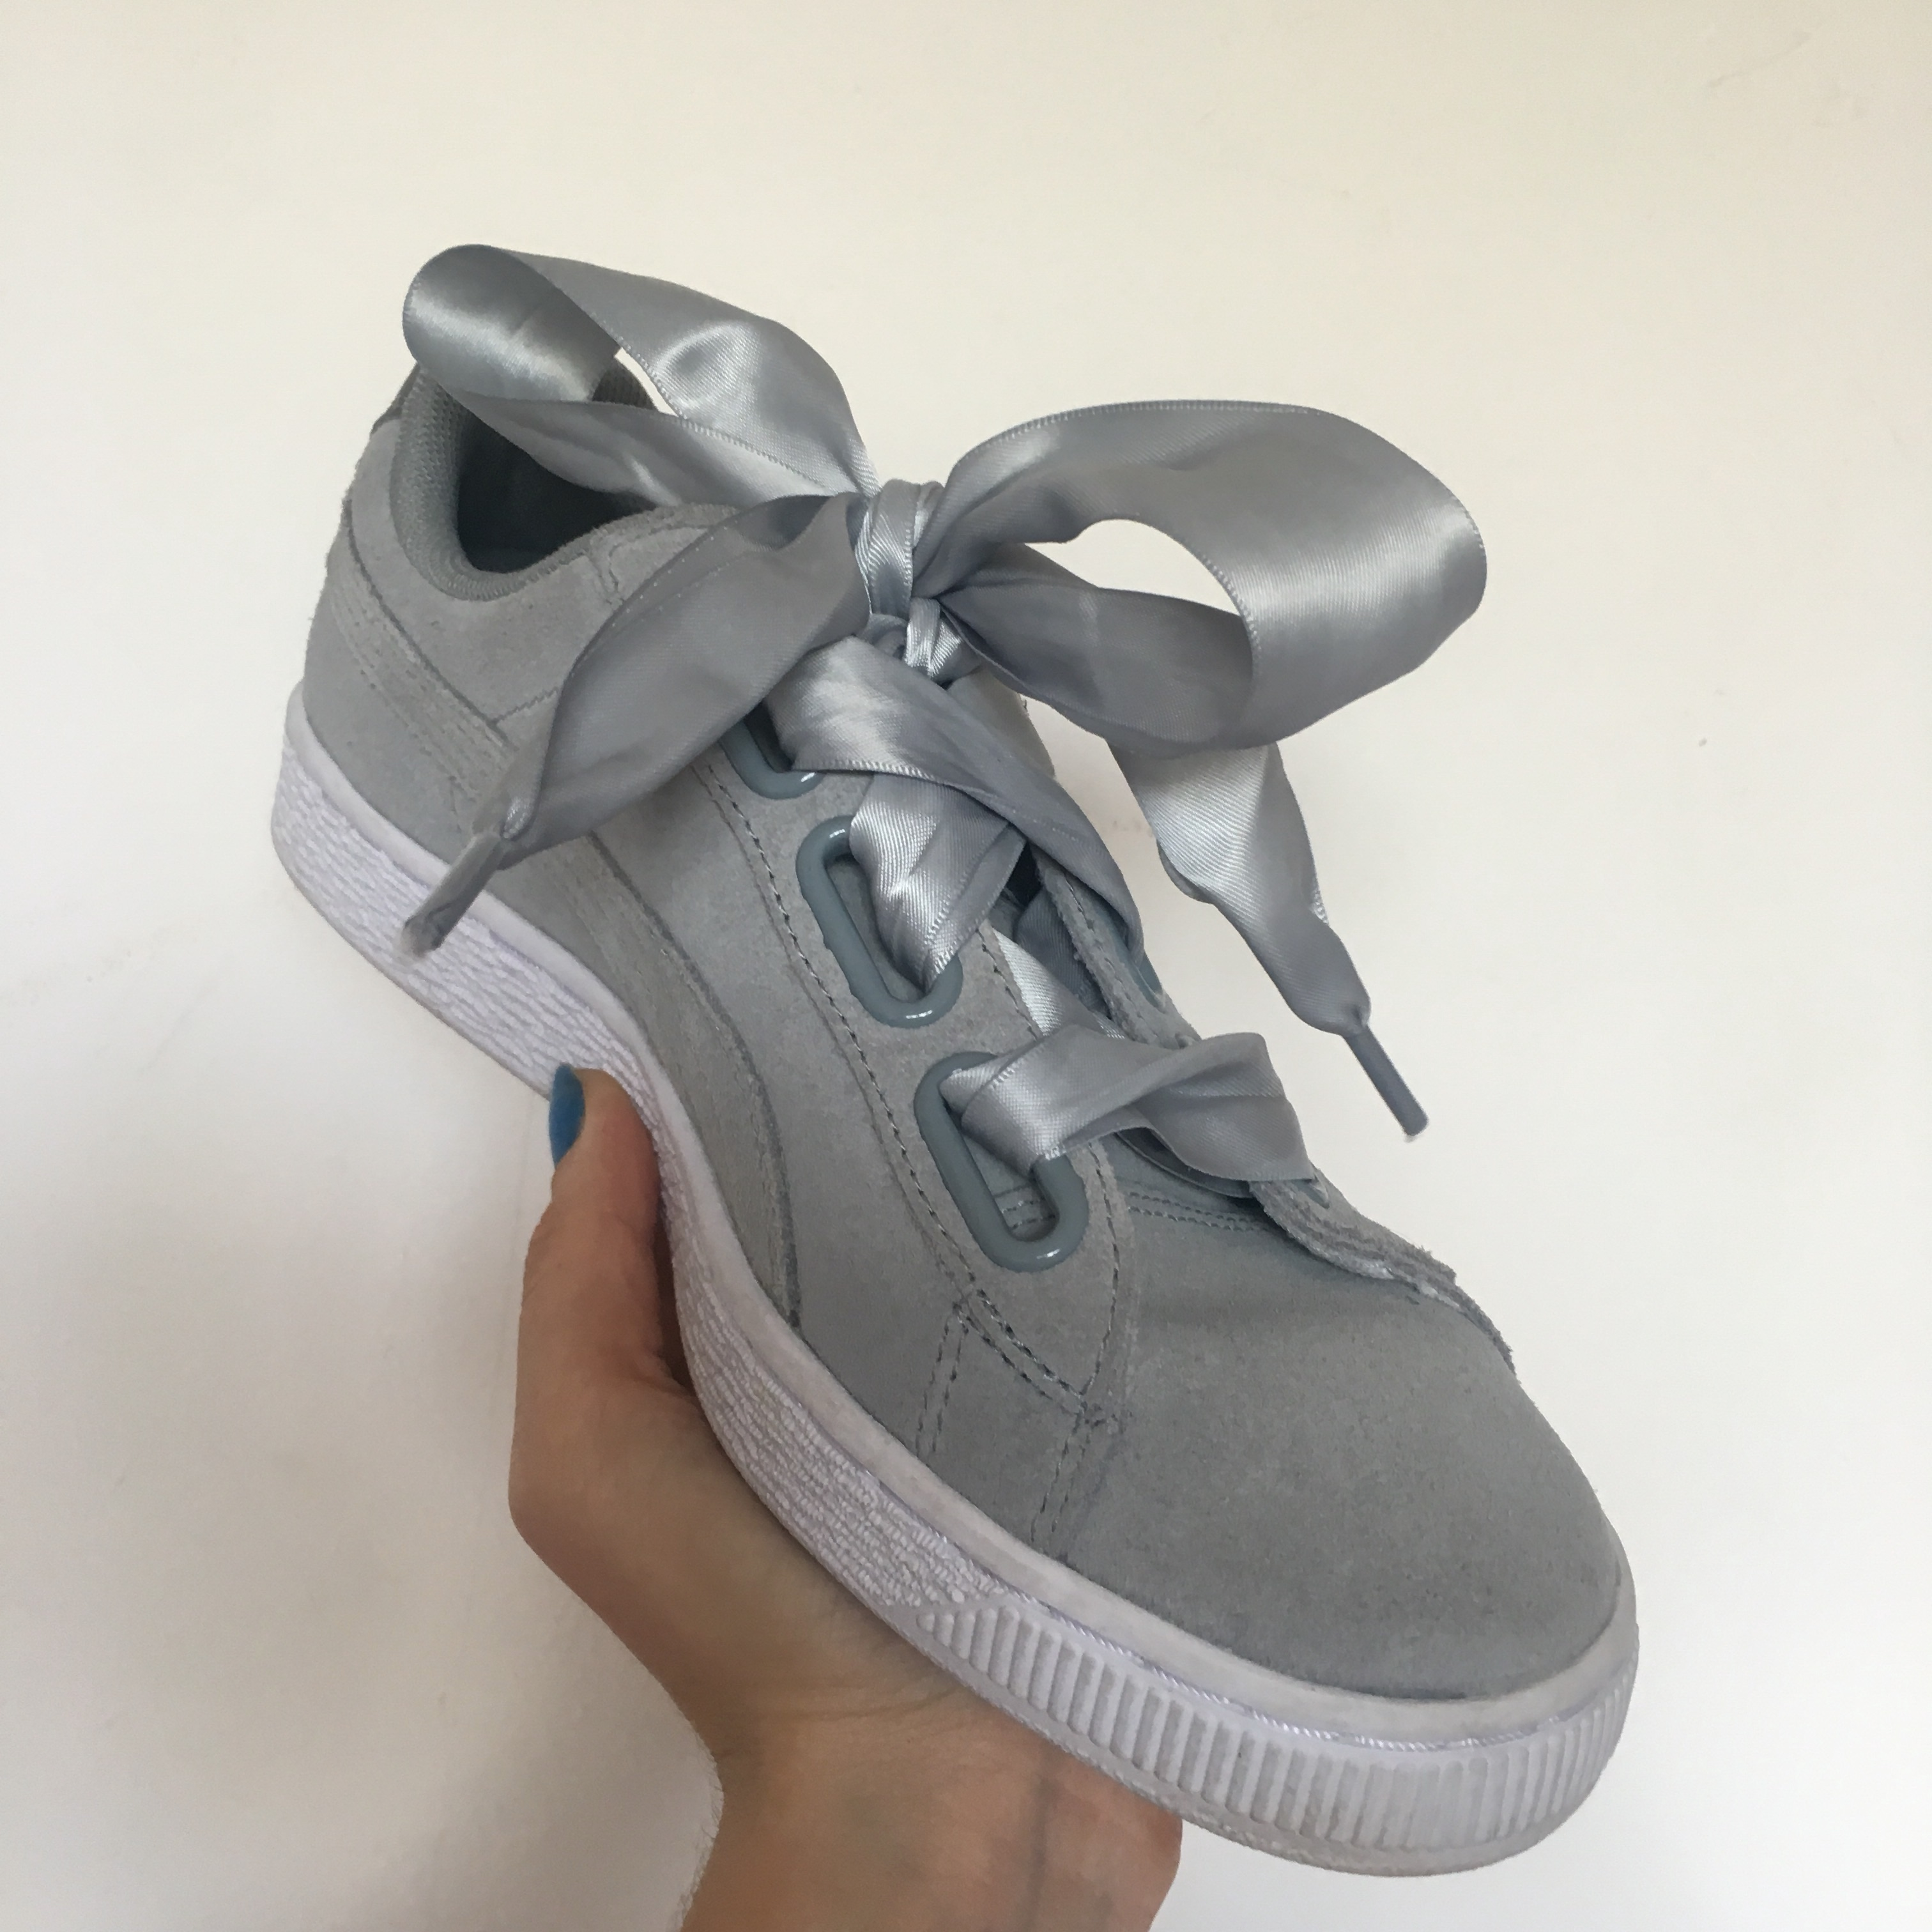 Puma Suede Ribbon Trainers - Suede